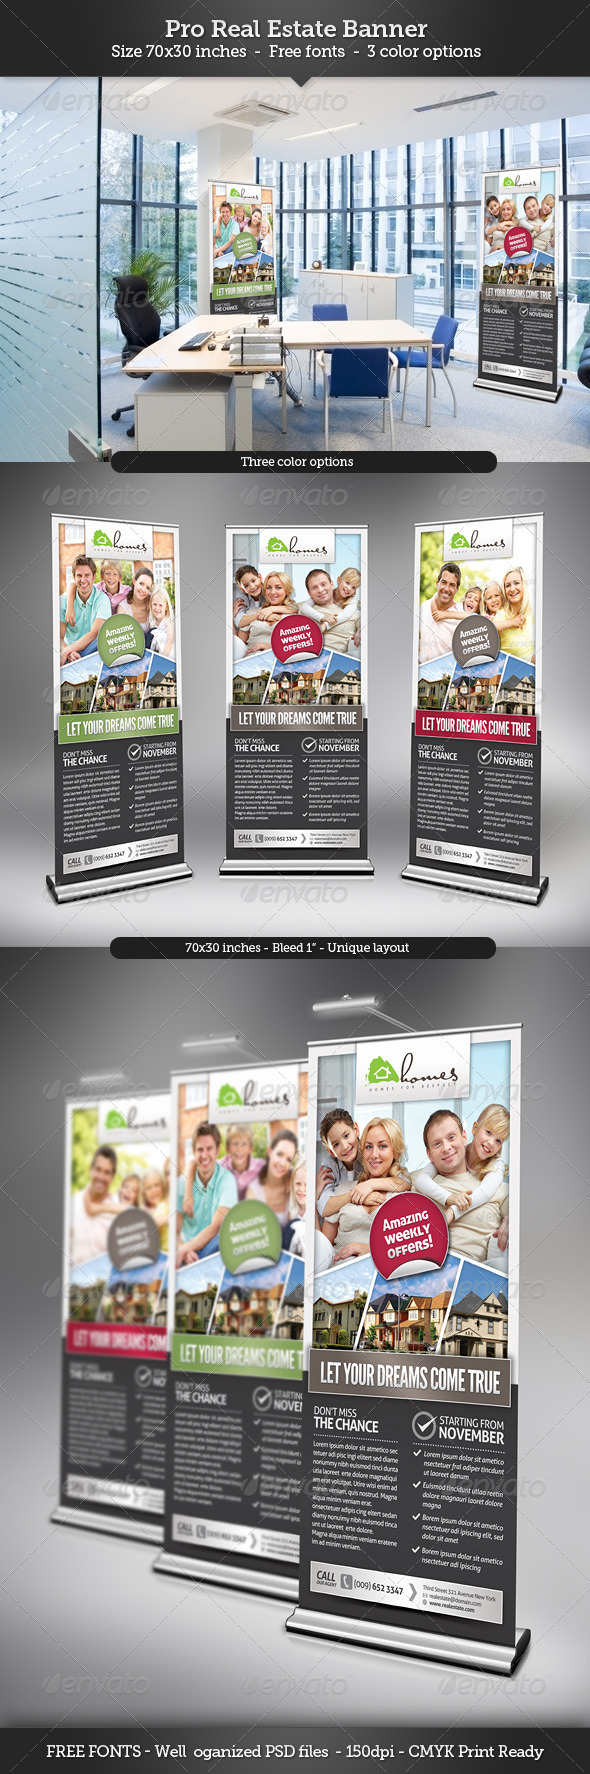 Real Estate Banner Template - Signage Print Templates